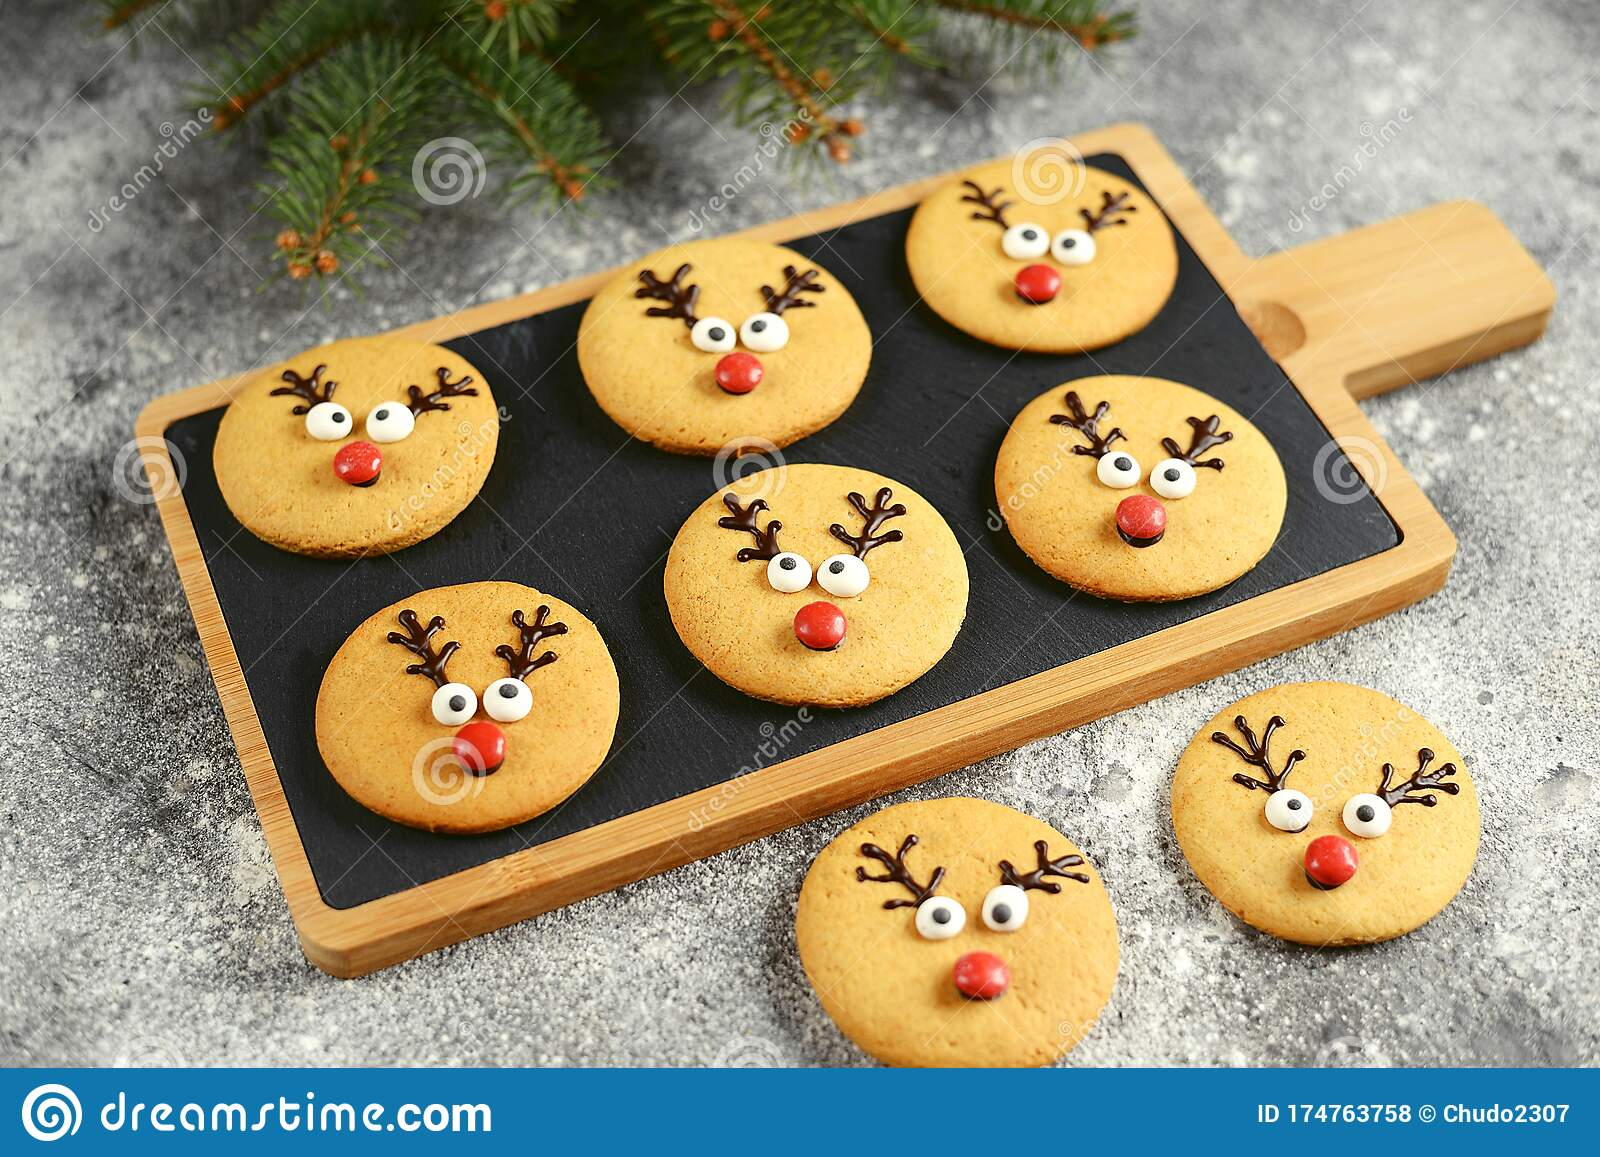 Cute New Year And Christmas Gingerbreads Santa Deer Homemade Christmas Baking Christmas Cookies Stock Photo Image Of Christmas Decorated 174763758